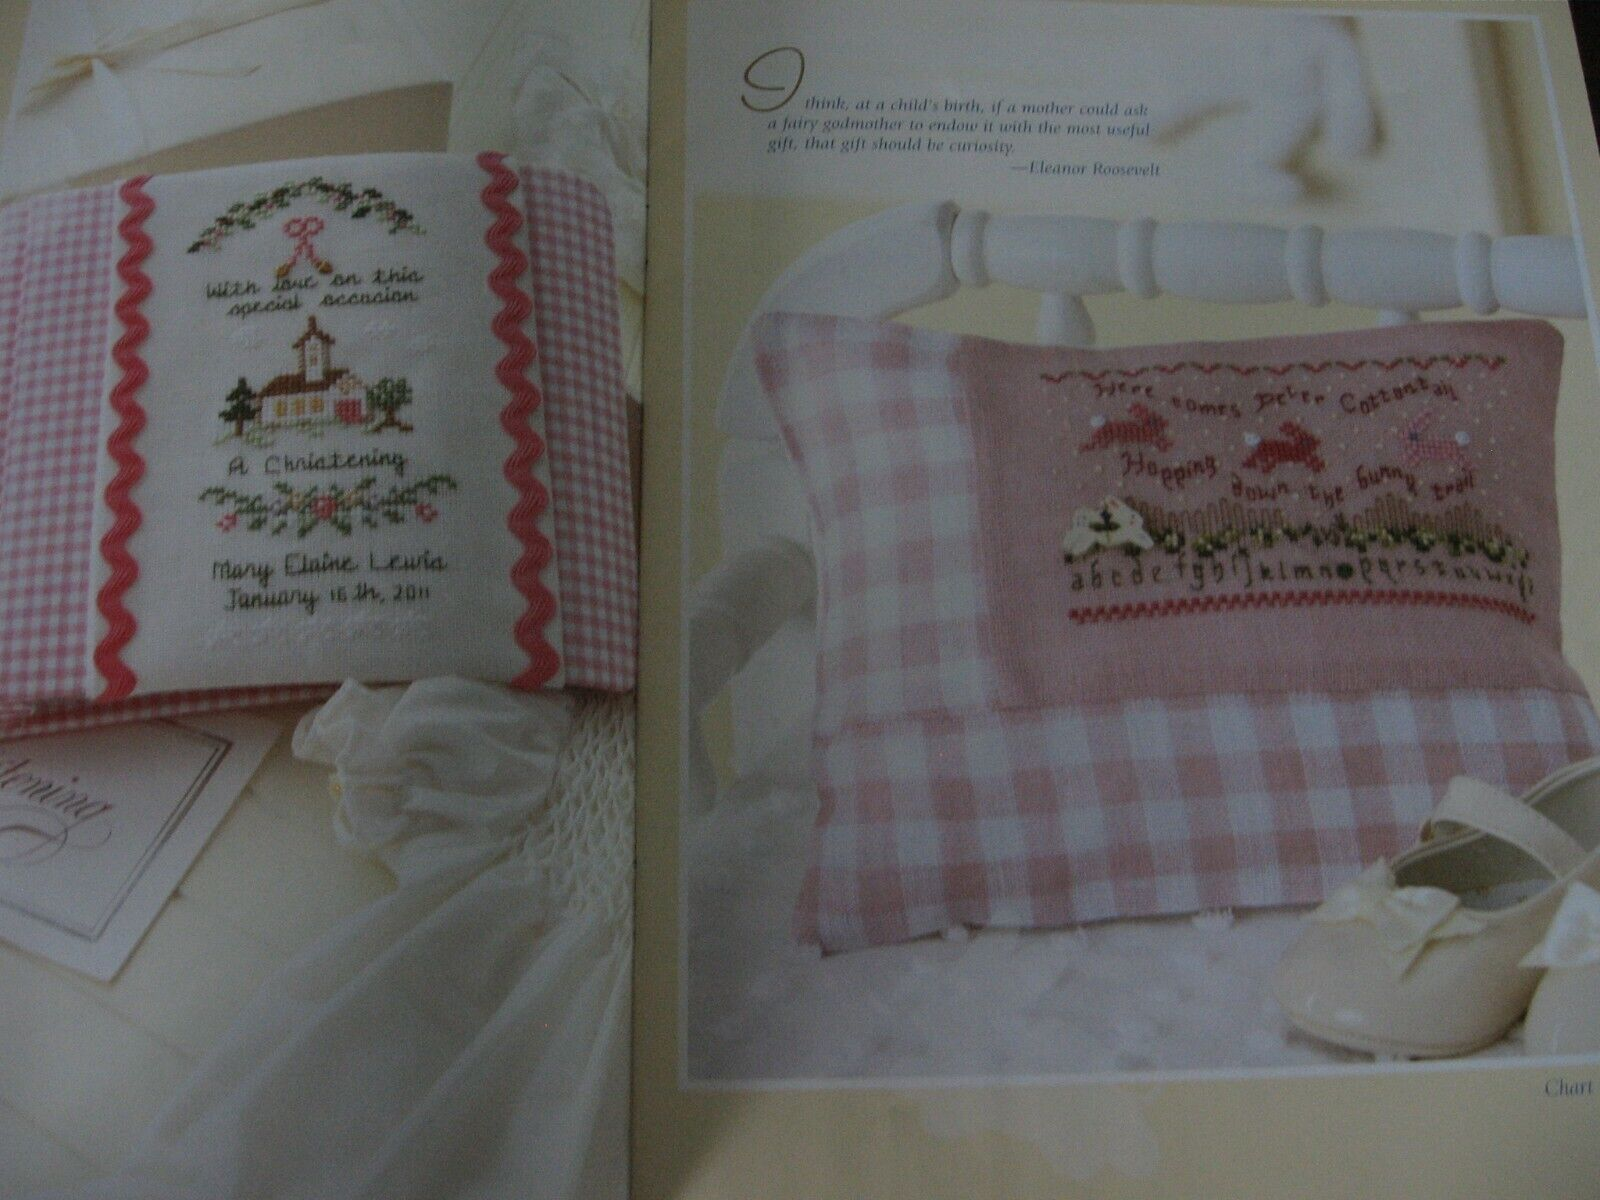 Sweet Nothings For Baby By Leisure Arts - 7 Cross Stitch Designs By Judy Whitman - $2.85